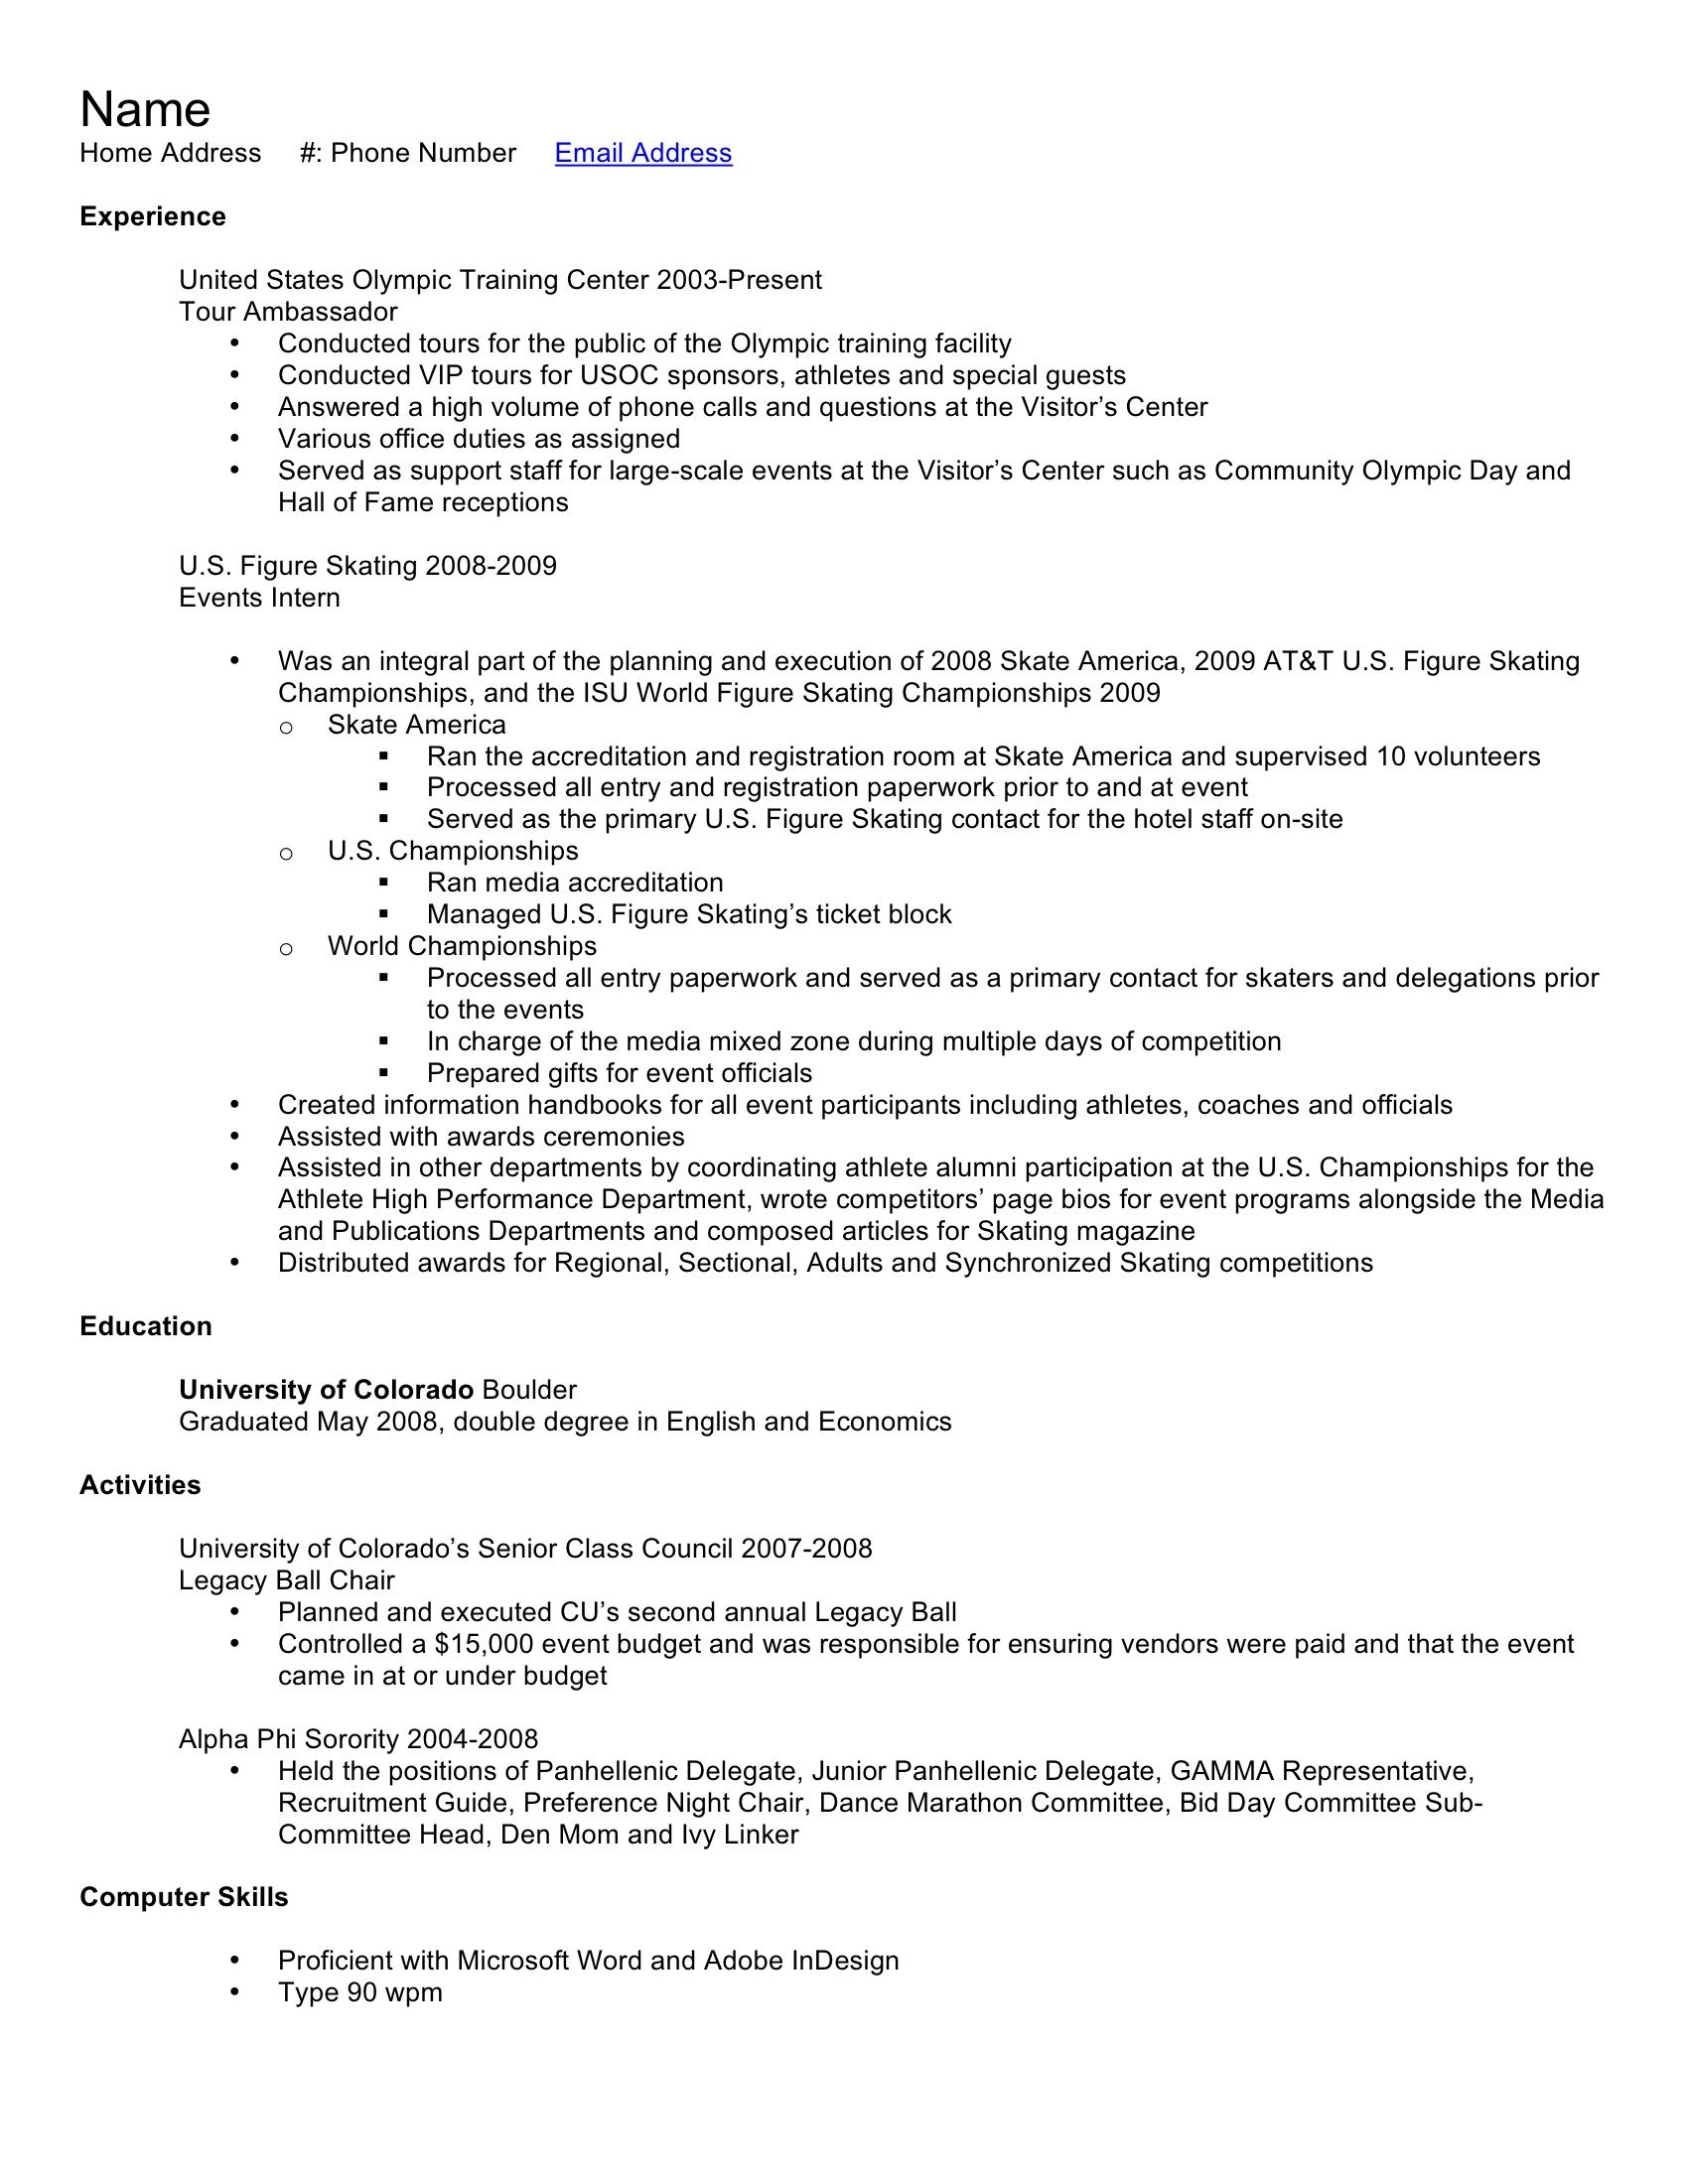 resume for entry level job